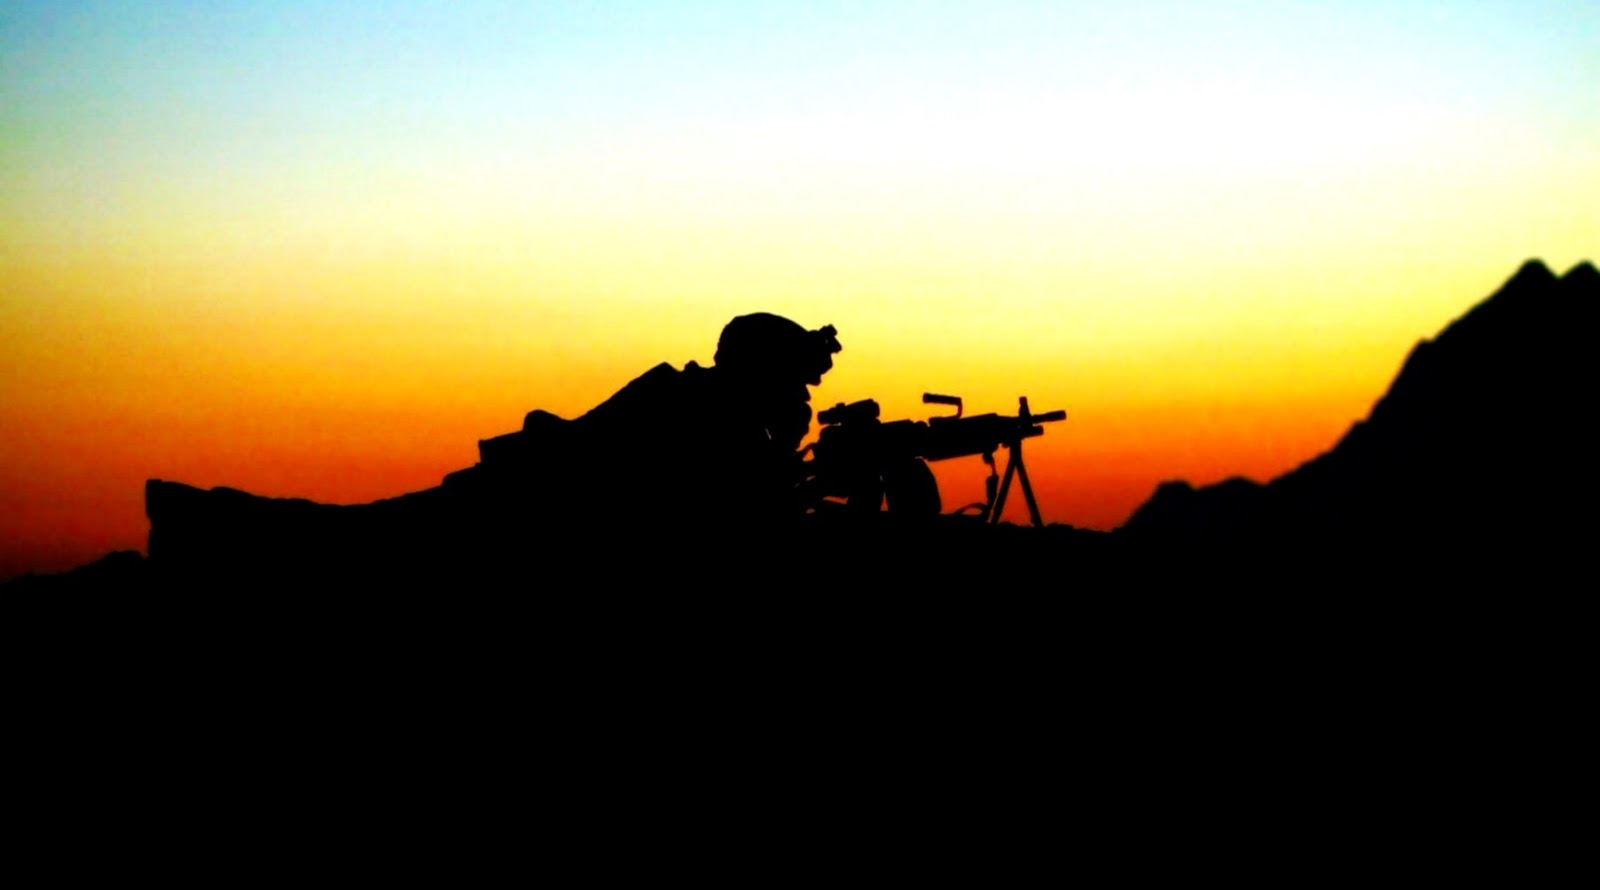 Simple Wallpaper Dragon Ball Z Silhouette - army-soldier-silhouette-sunset  Collection_202955 .jpg